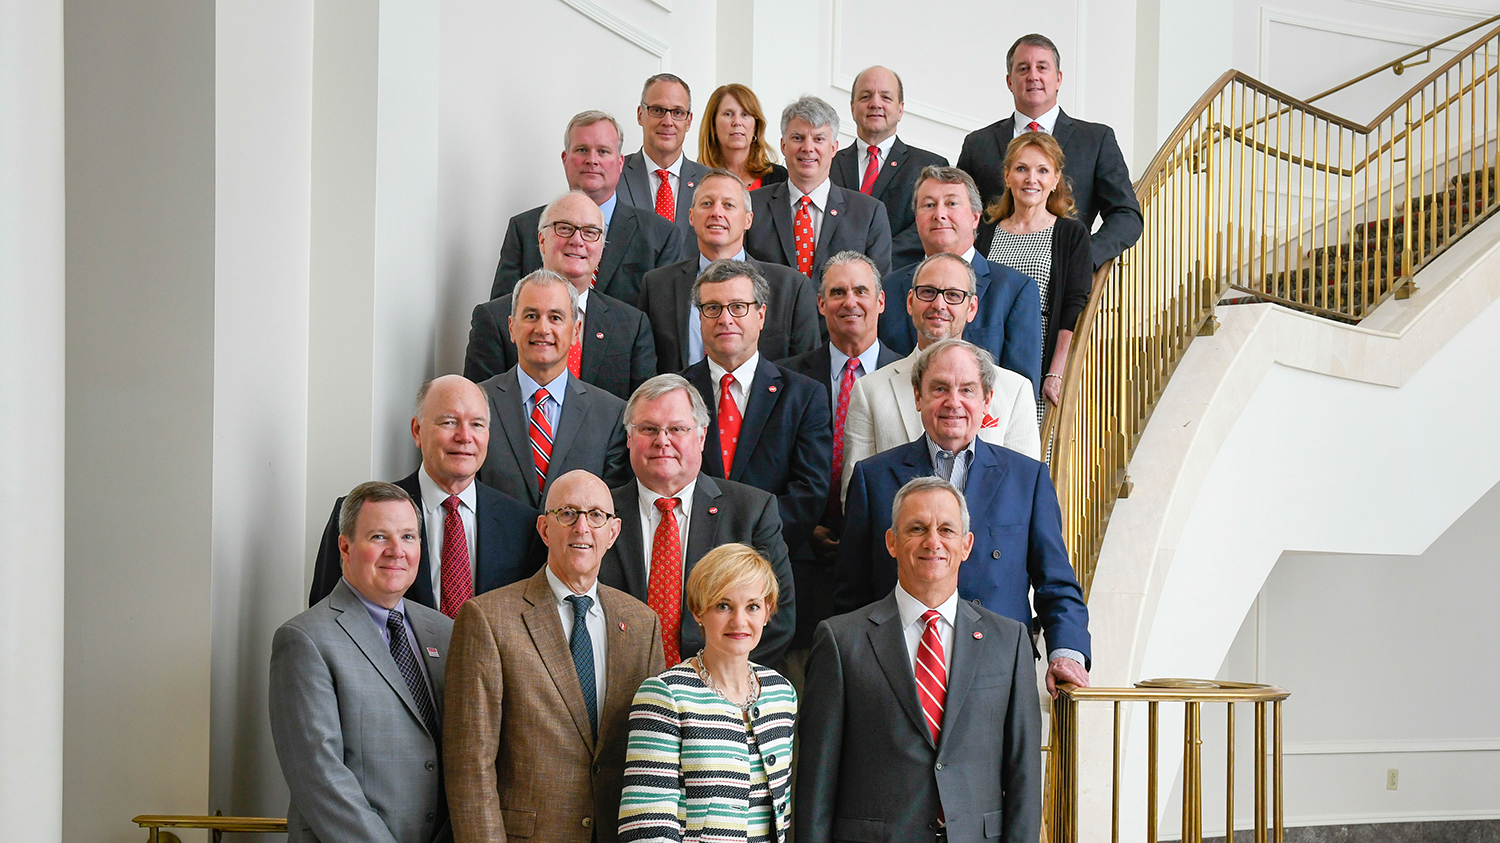 NC State Foundation Board